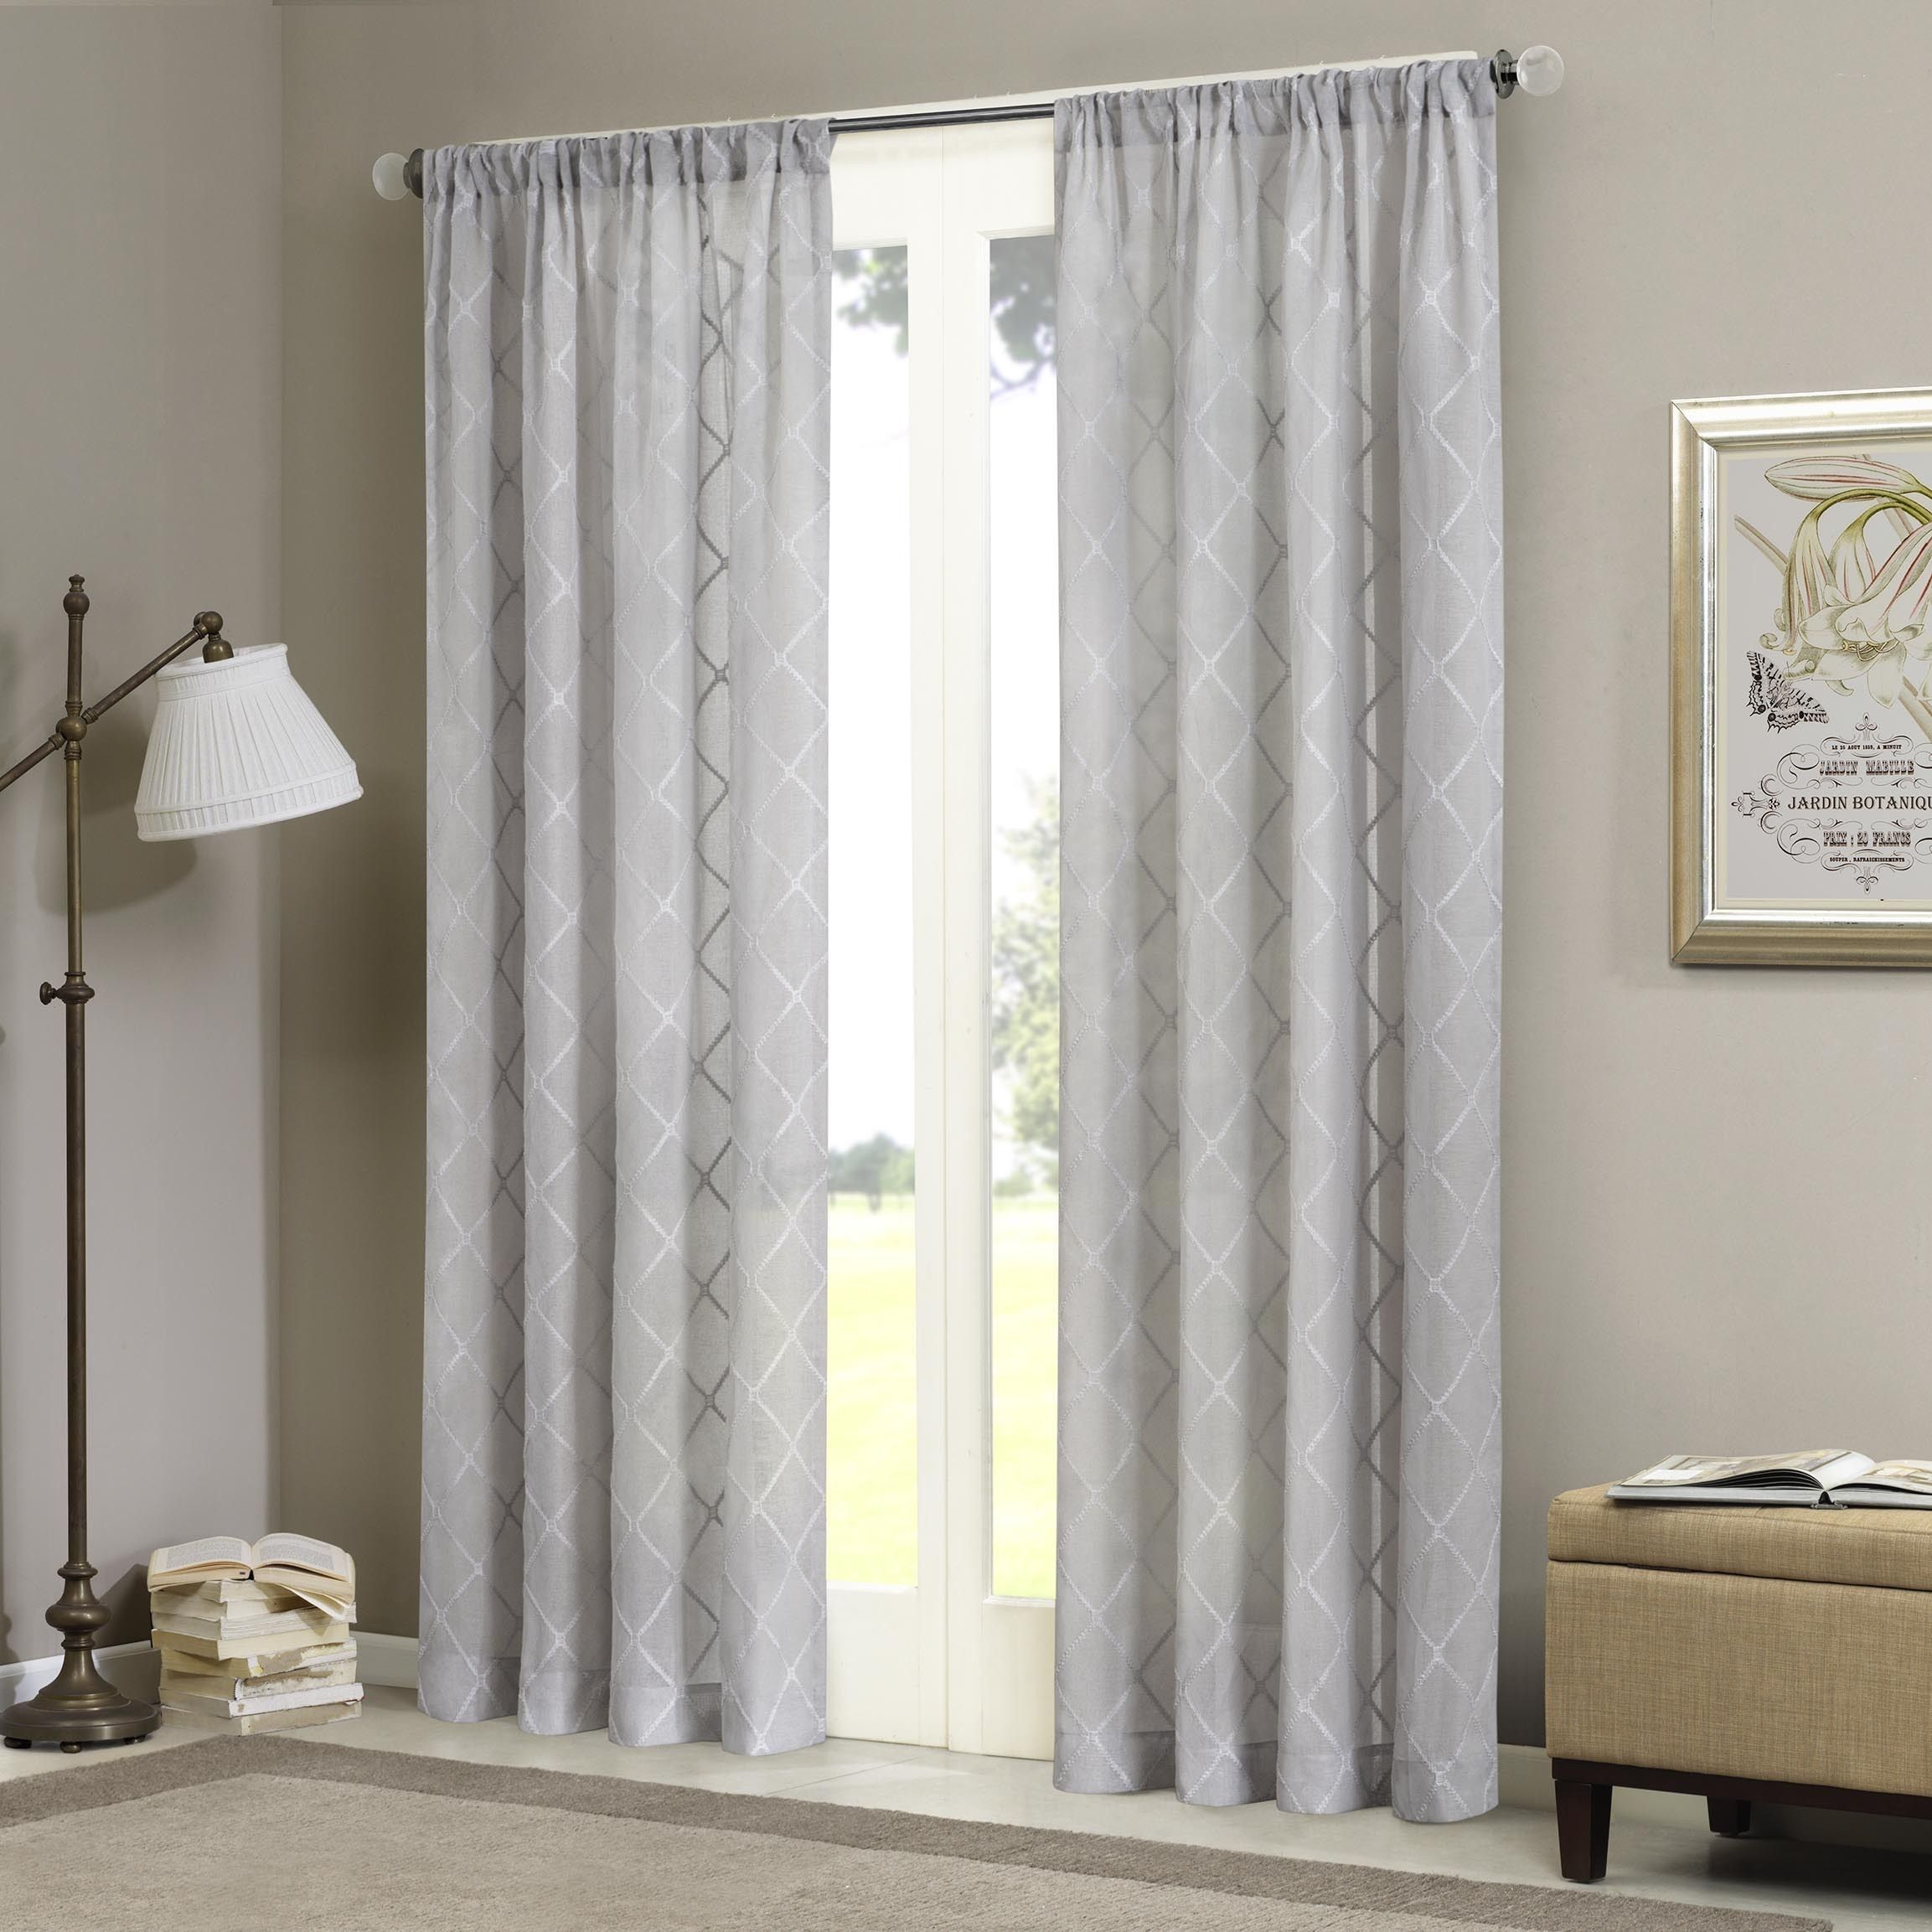 Threshold linen grommet sheer curtain panel product details page - Madison Park Iris Embroidered Diamond Sheer Curtain Panel By Madison Park